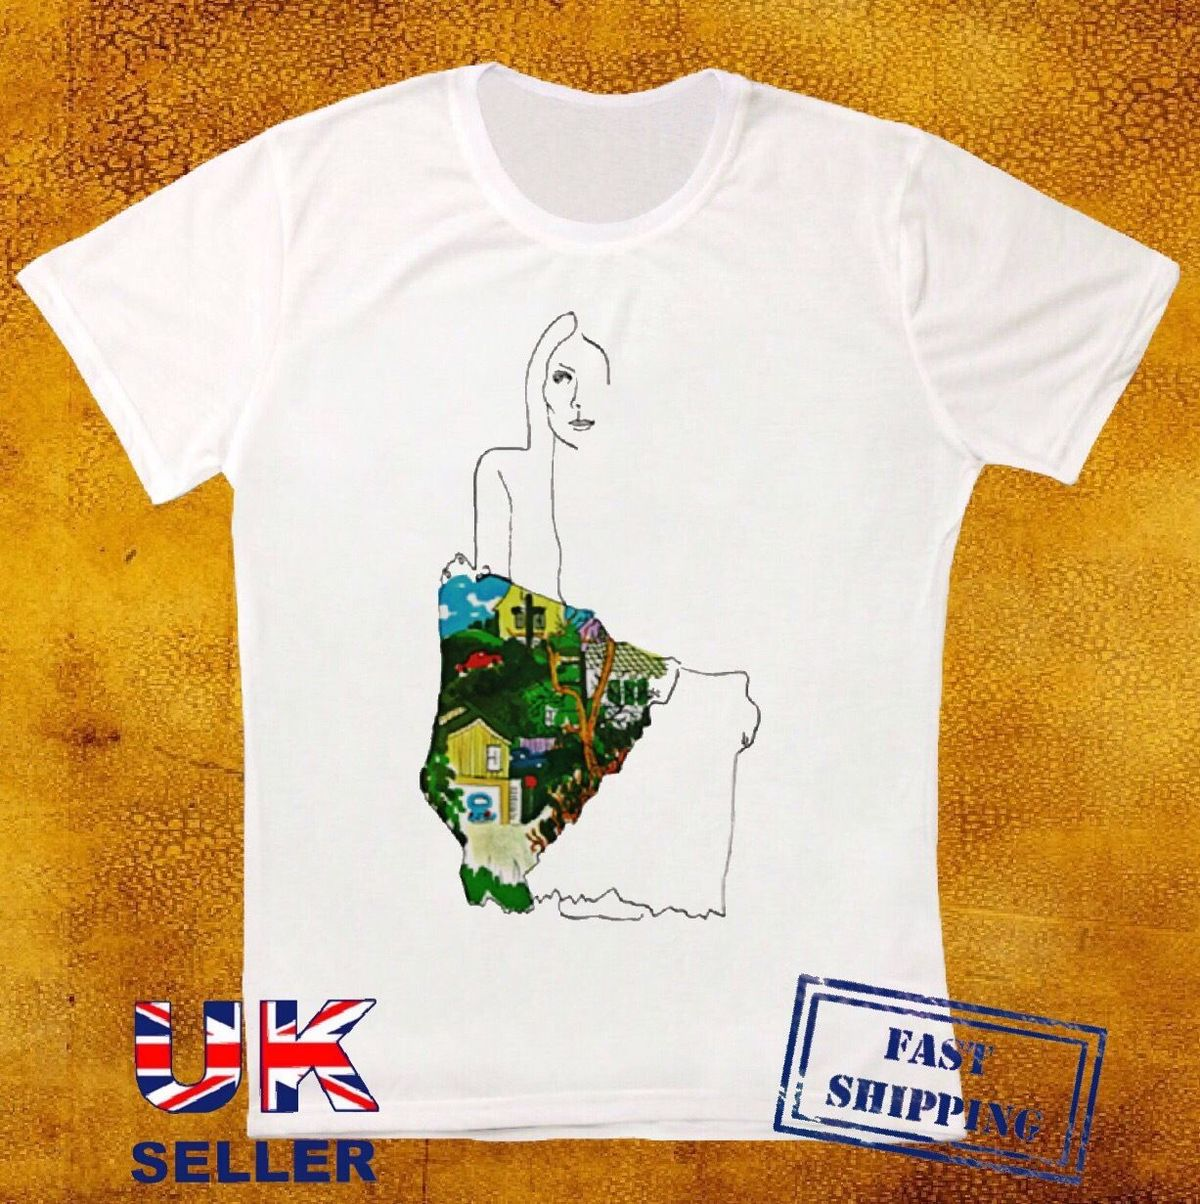 JONI MITCHELL LADIES OF THE CANYON ALBUM RETRO VINTAGE HIPSTER UNISEX T SHIRT New Mens Spring Summer Dress Short Sleeve Casual in T Shirts from Men 39 s Clothing